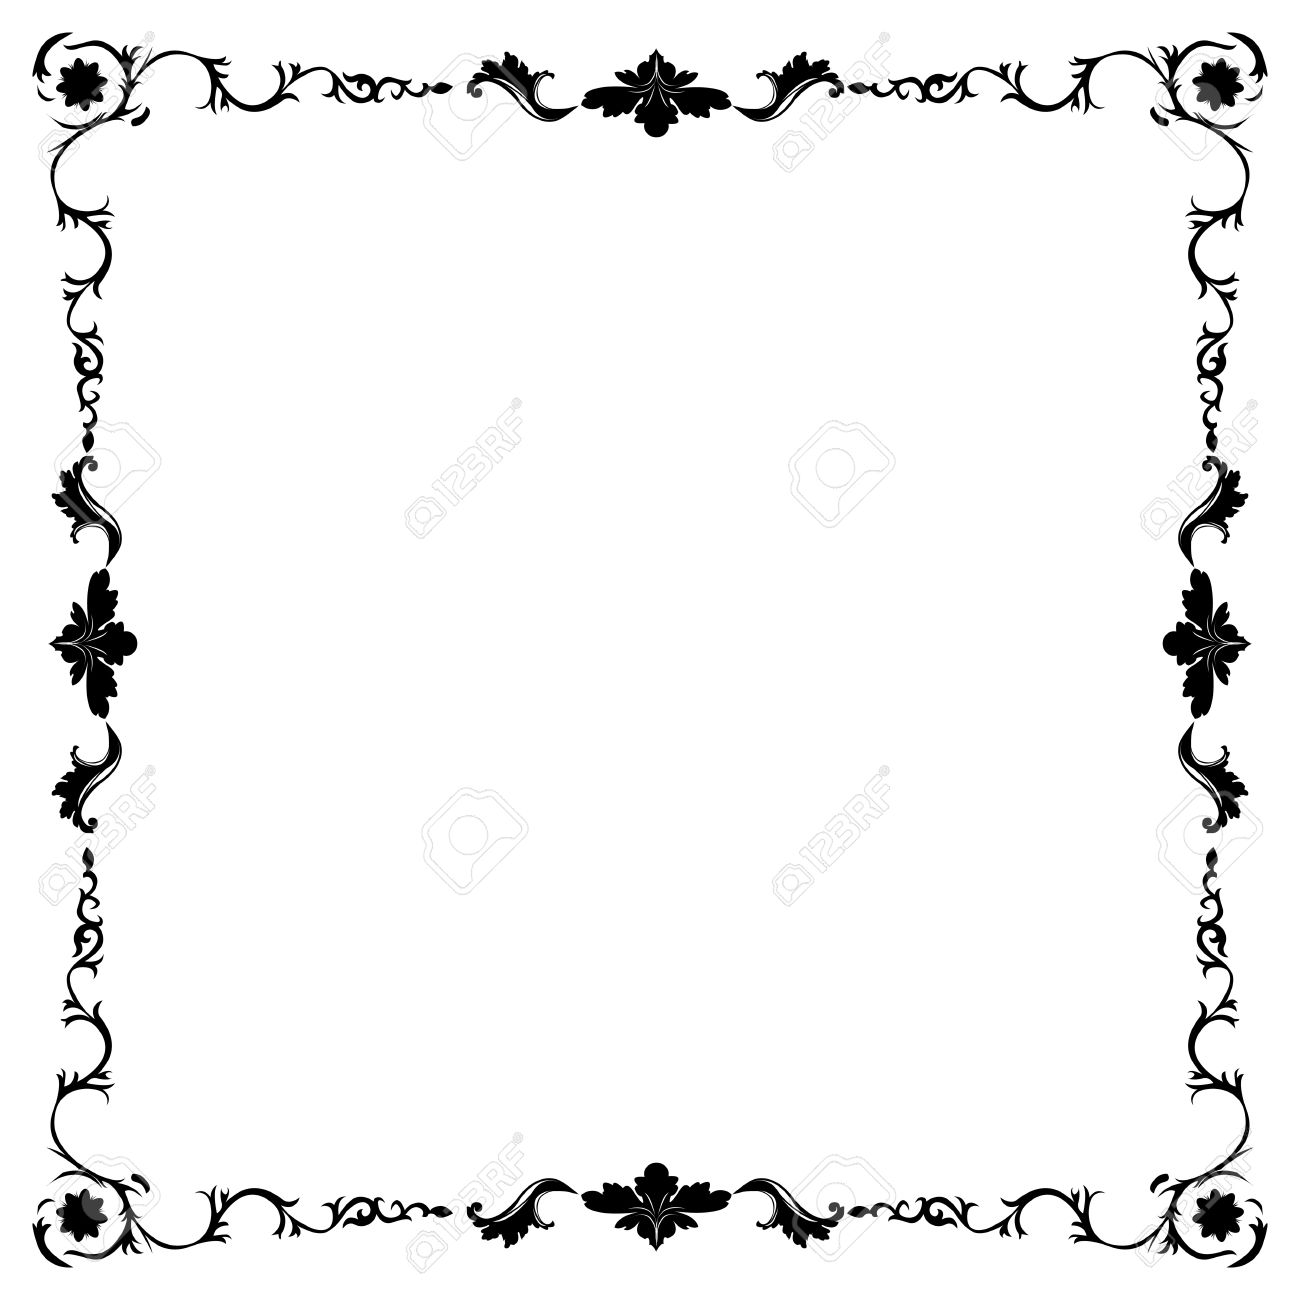 Art Nouveau Black And White Floral Frame Royalty Free Cliparts ...